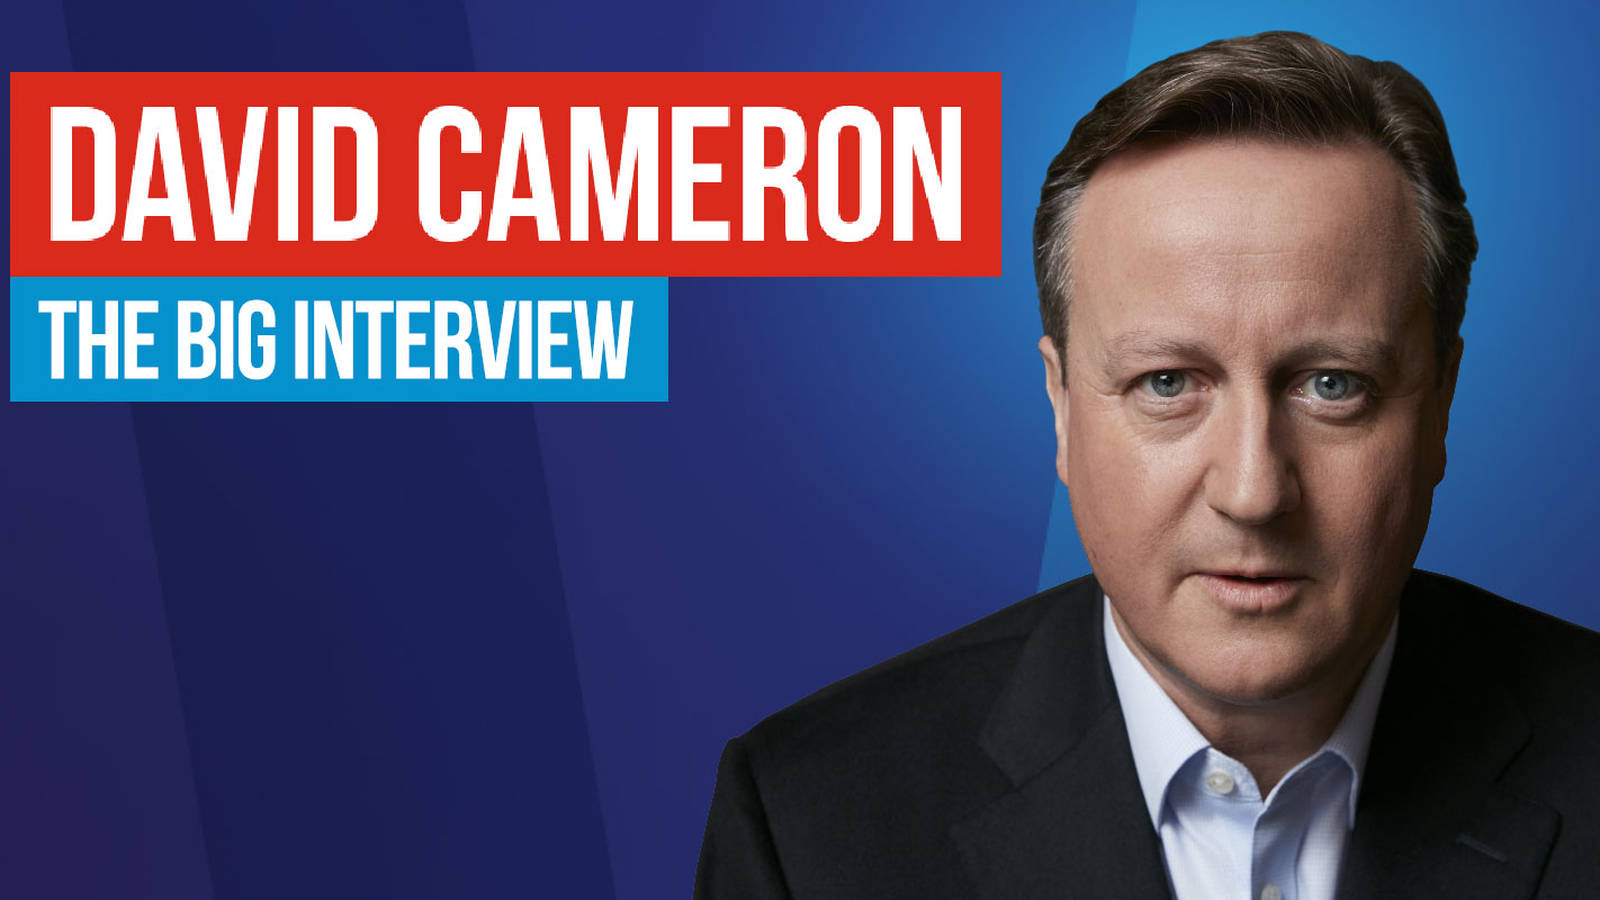 David Cameron: The Big Interview Podcast - Download It Now